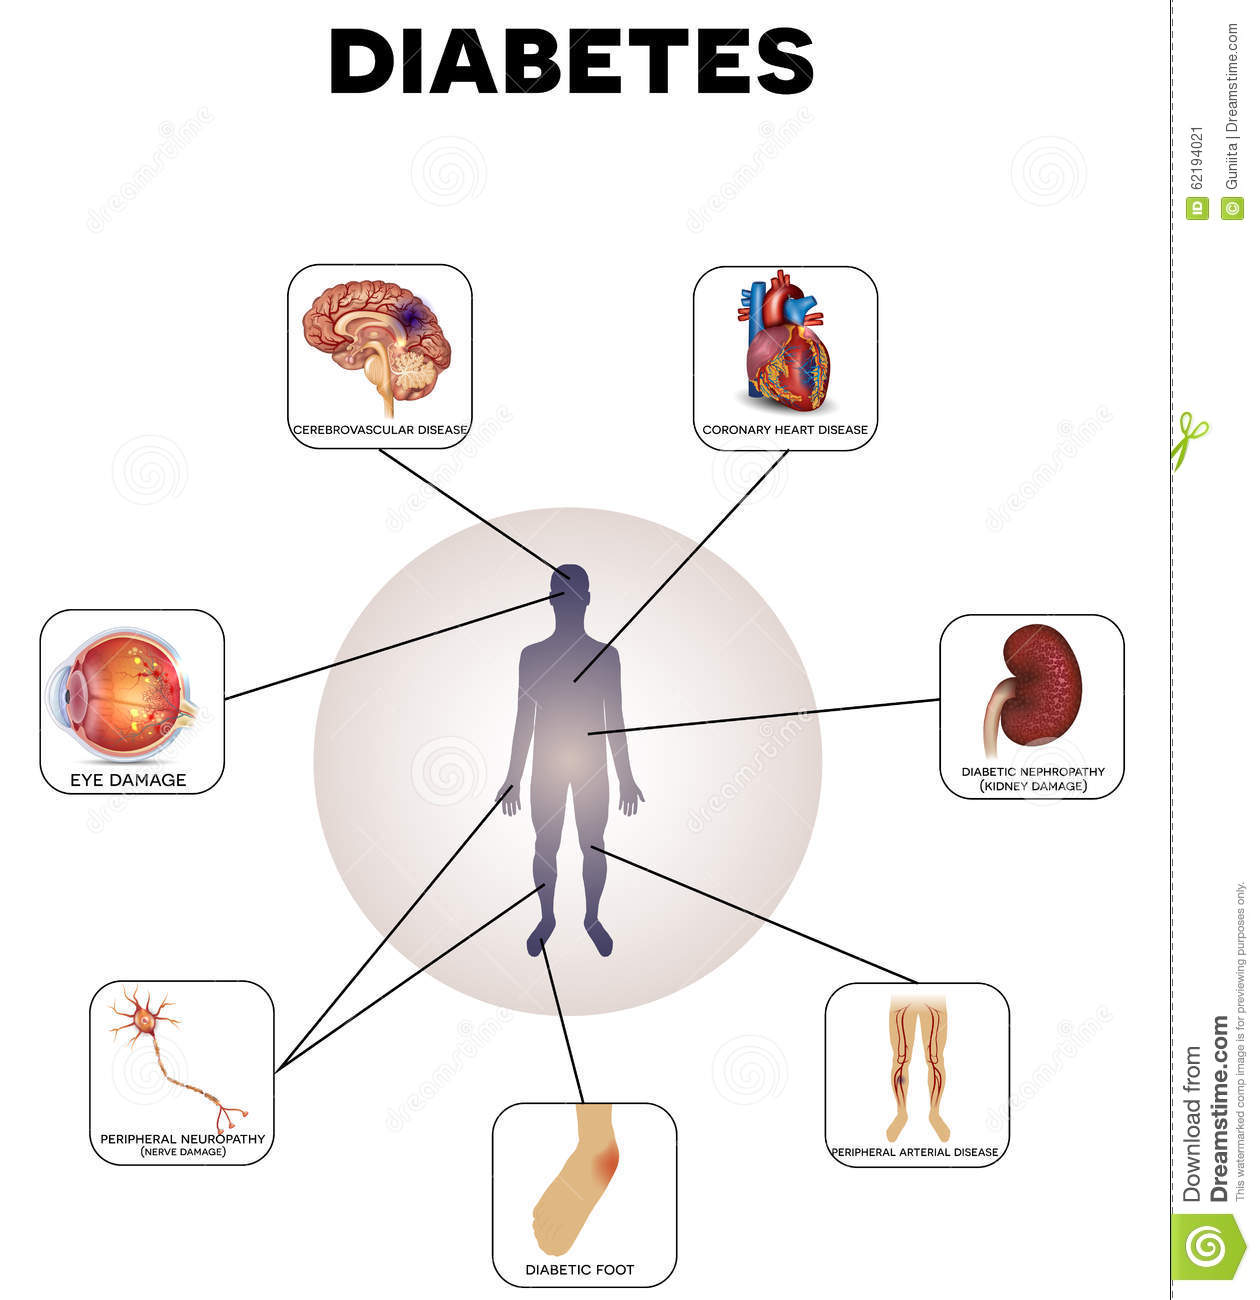 Type 2 diabetes mellitus is also known as 47